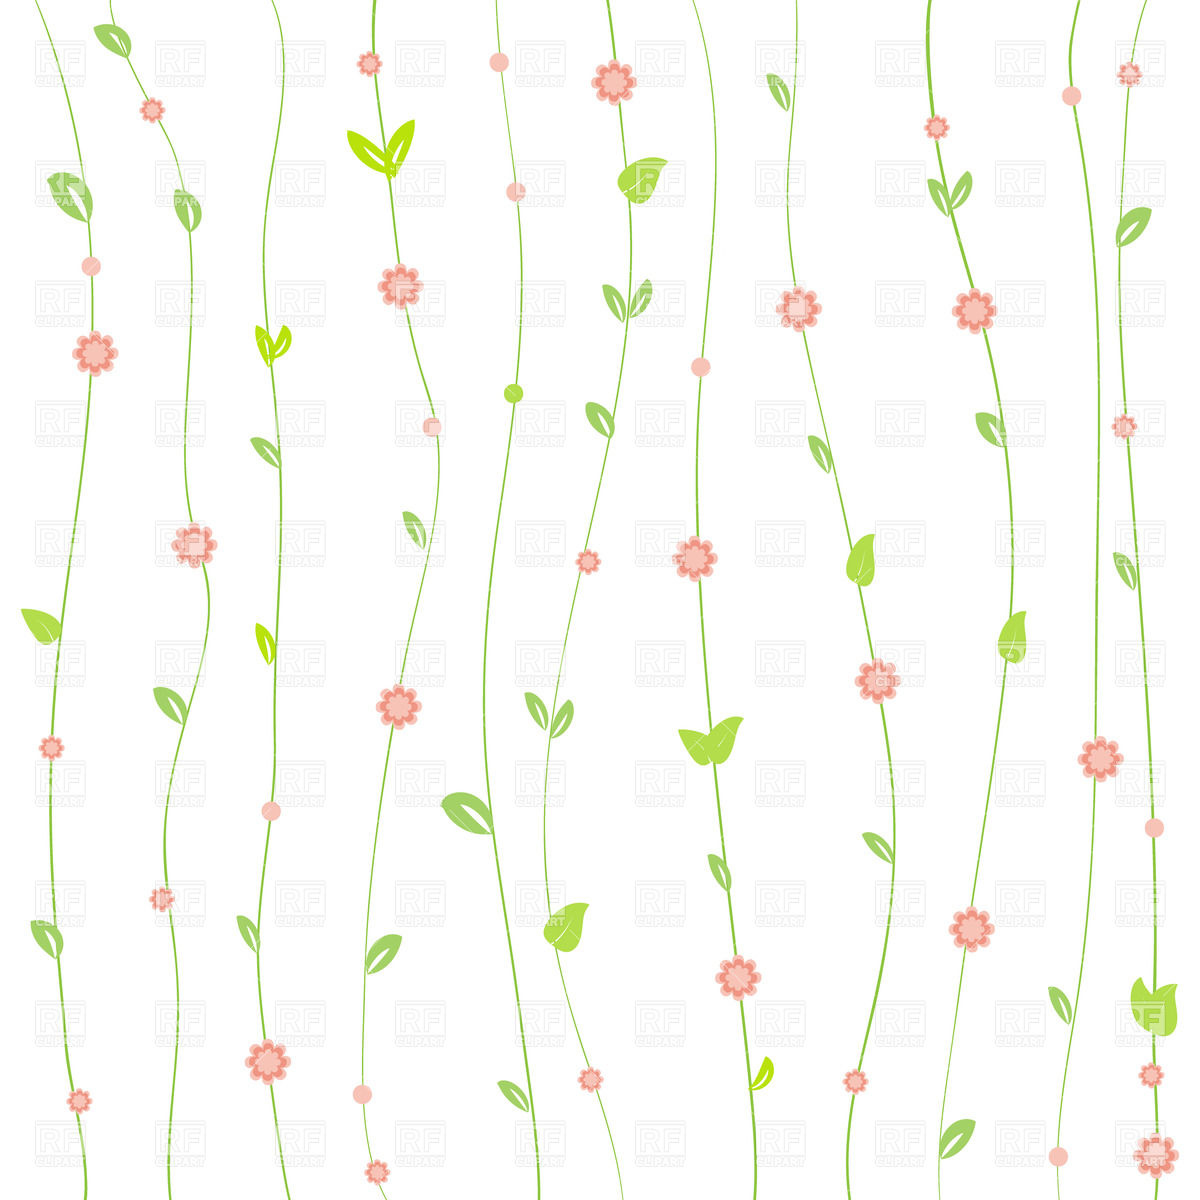 Background clipart. Clip art free download